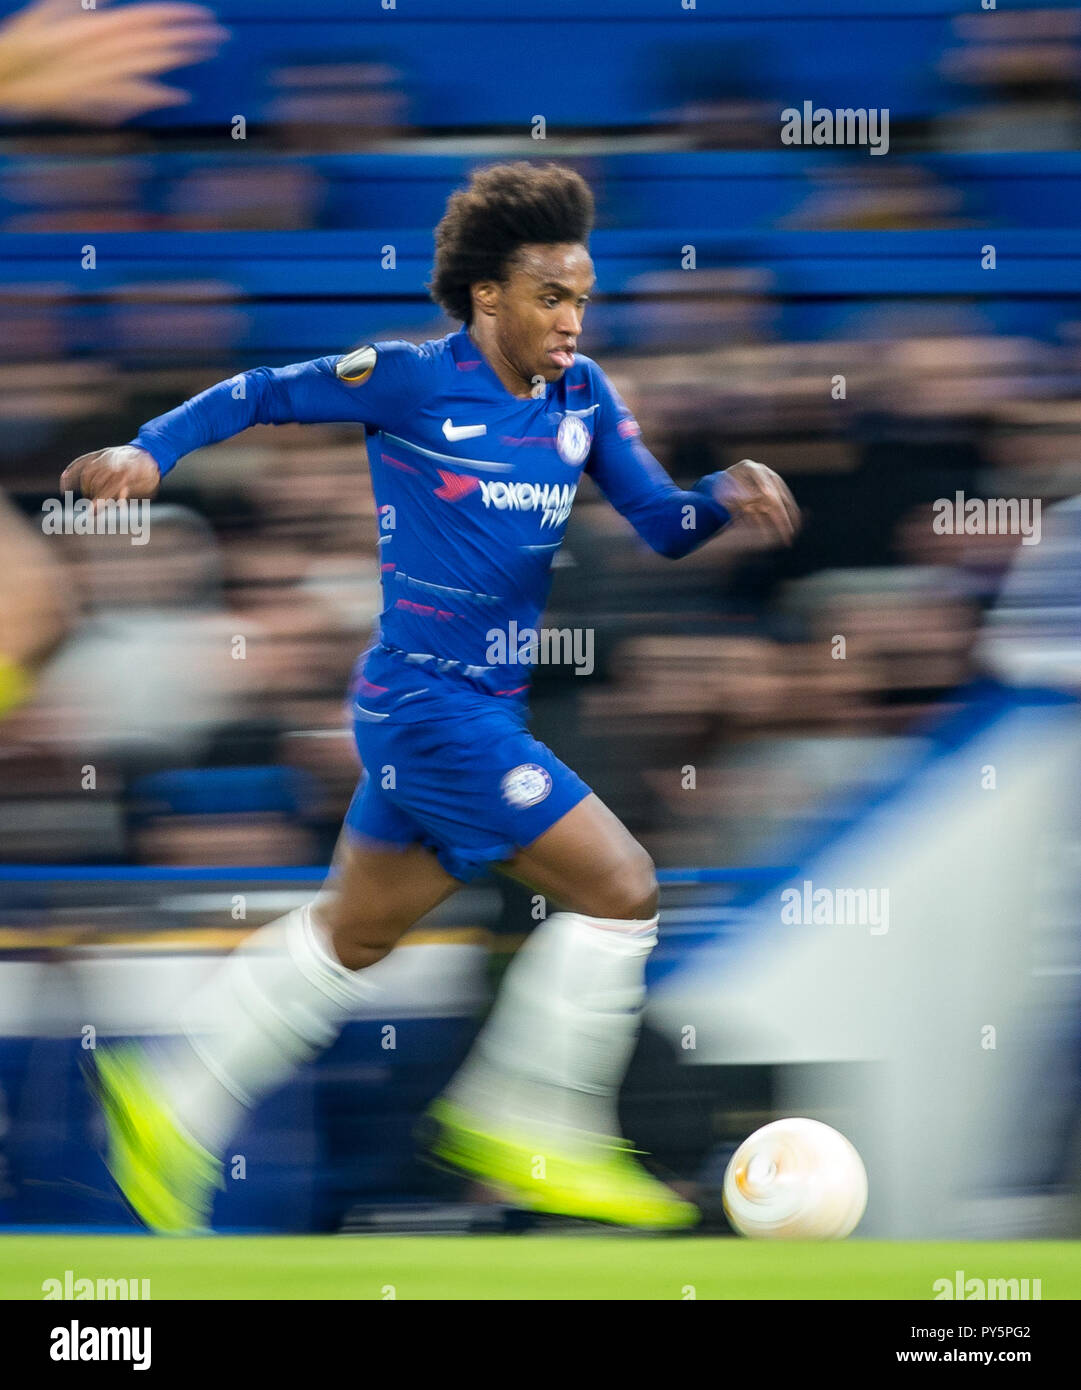 London, UK. 25th October, 2018. WILLIAN of Chelsea in action on his 250th appearance for the club during the UEFA Europa League group match between Chelsea and FC BATE Borisov at Stamford Bridge, London, England on 25 October 2018. Photo by Andy Rowland. . (Photograph May Only Be Used For Newspaper And/Or Magazine Editorial Purposes. www.football-dataco.com) Credit: Andrew Rowland/Alamy Live News - Stock Image